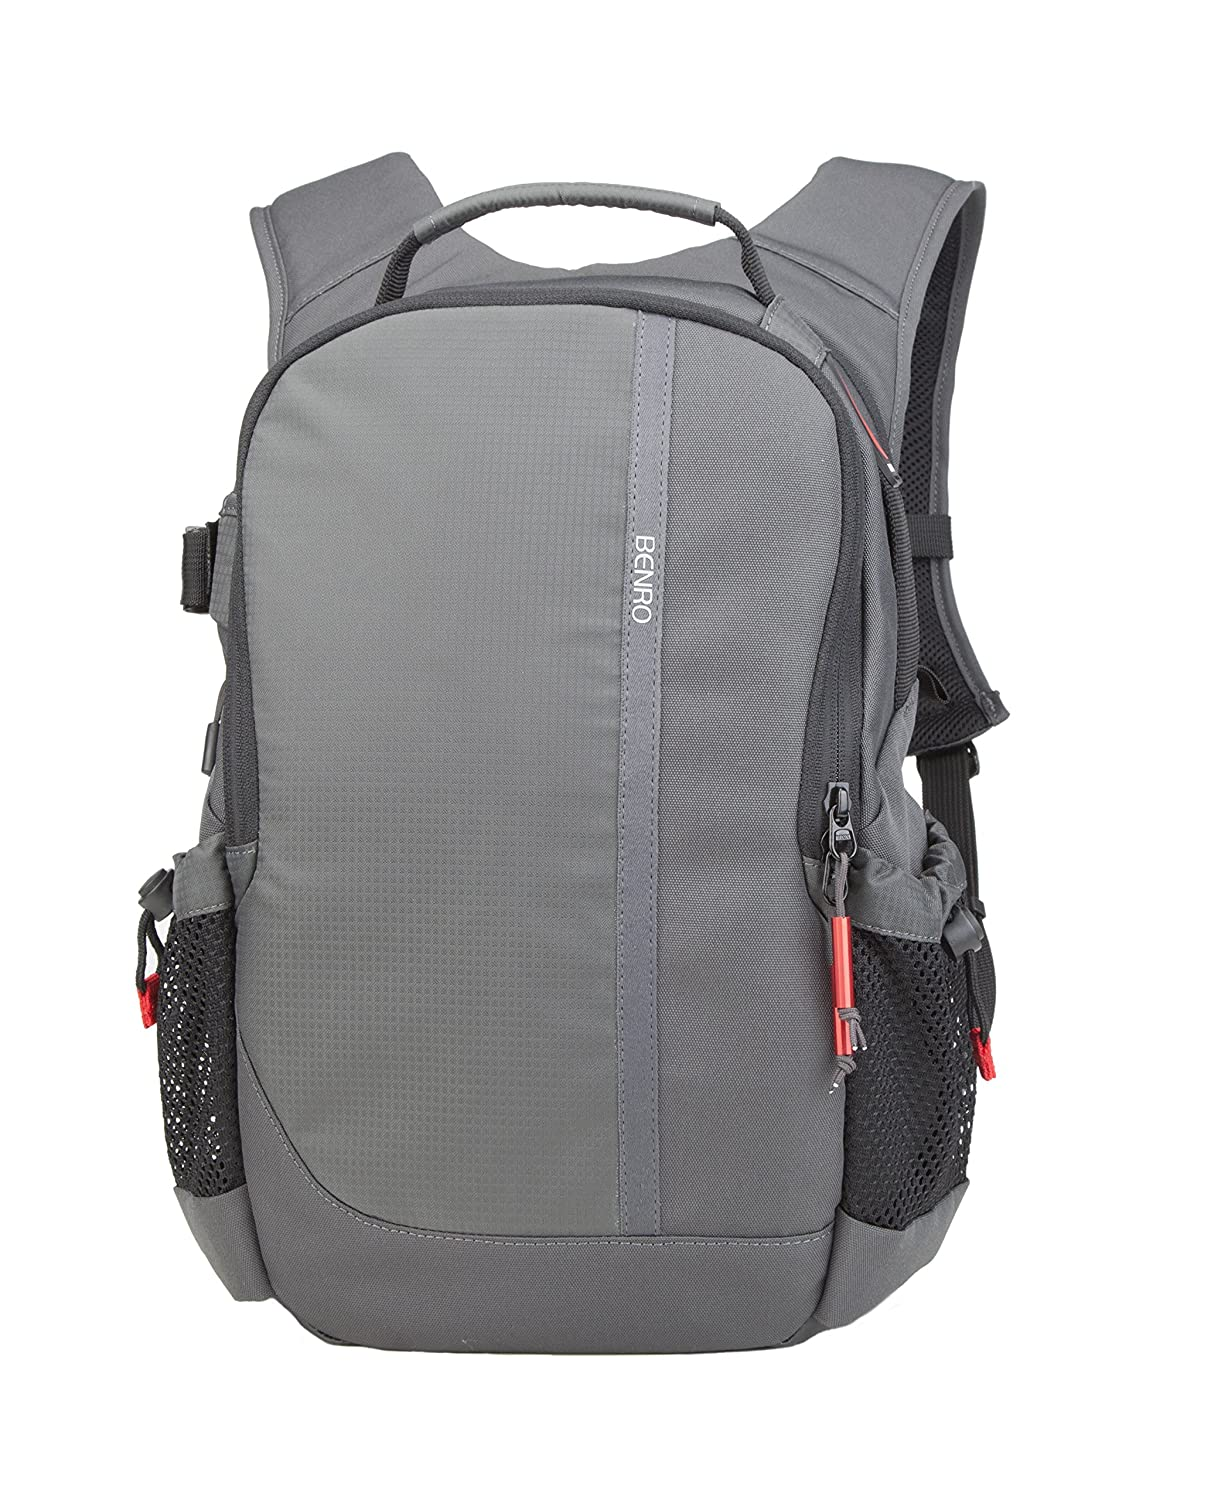 Benro Swift 100 Backpack Bag Black